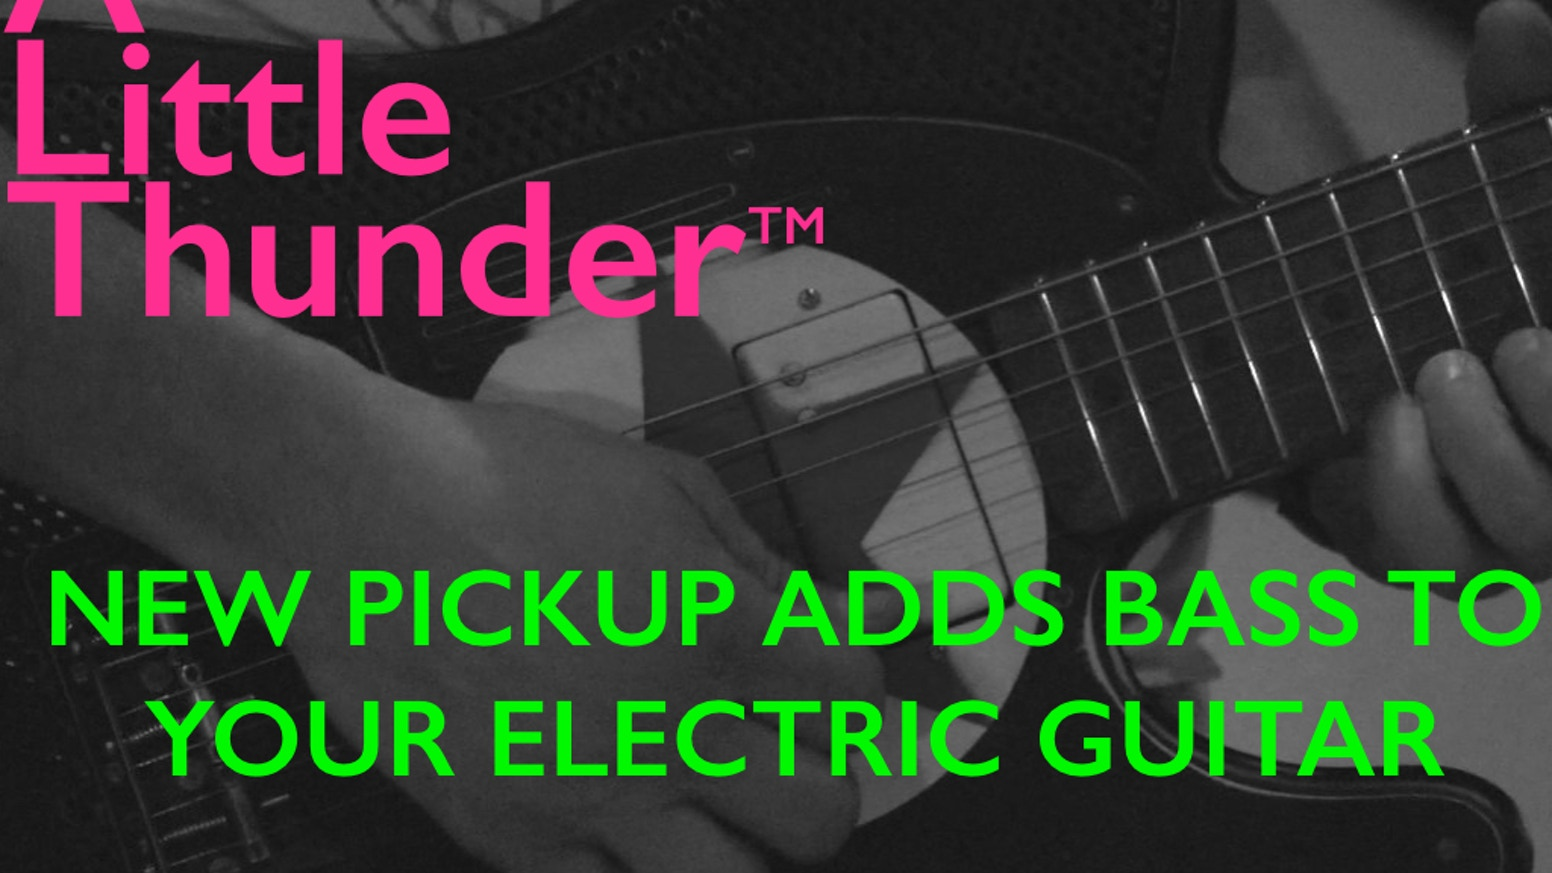 Revolutionary Humbucker Pickup adds Bass to Electric Guitars. No routing, 9V, MIDI etc. Seeks to Shake Up Game for All Genres of Music.